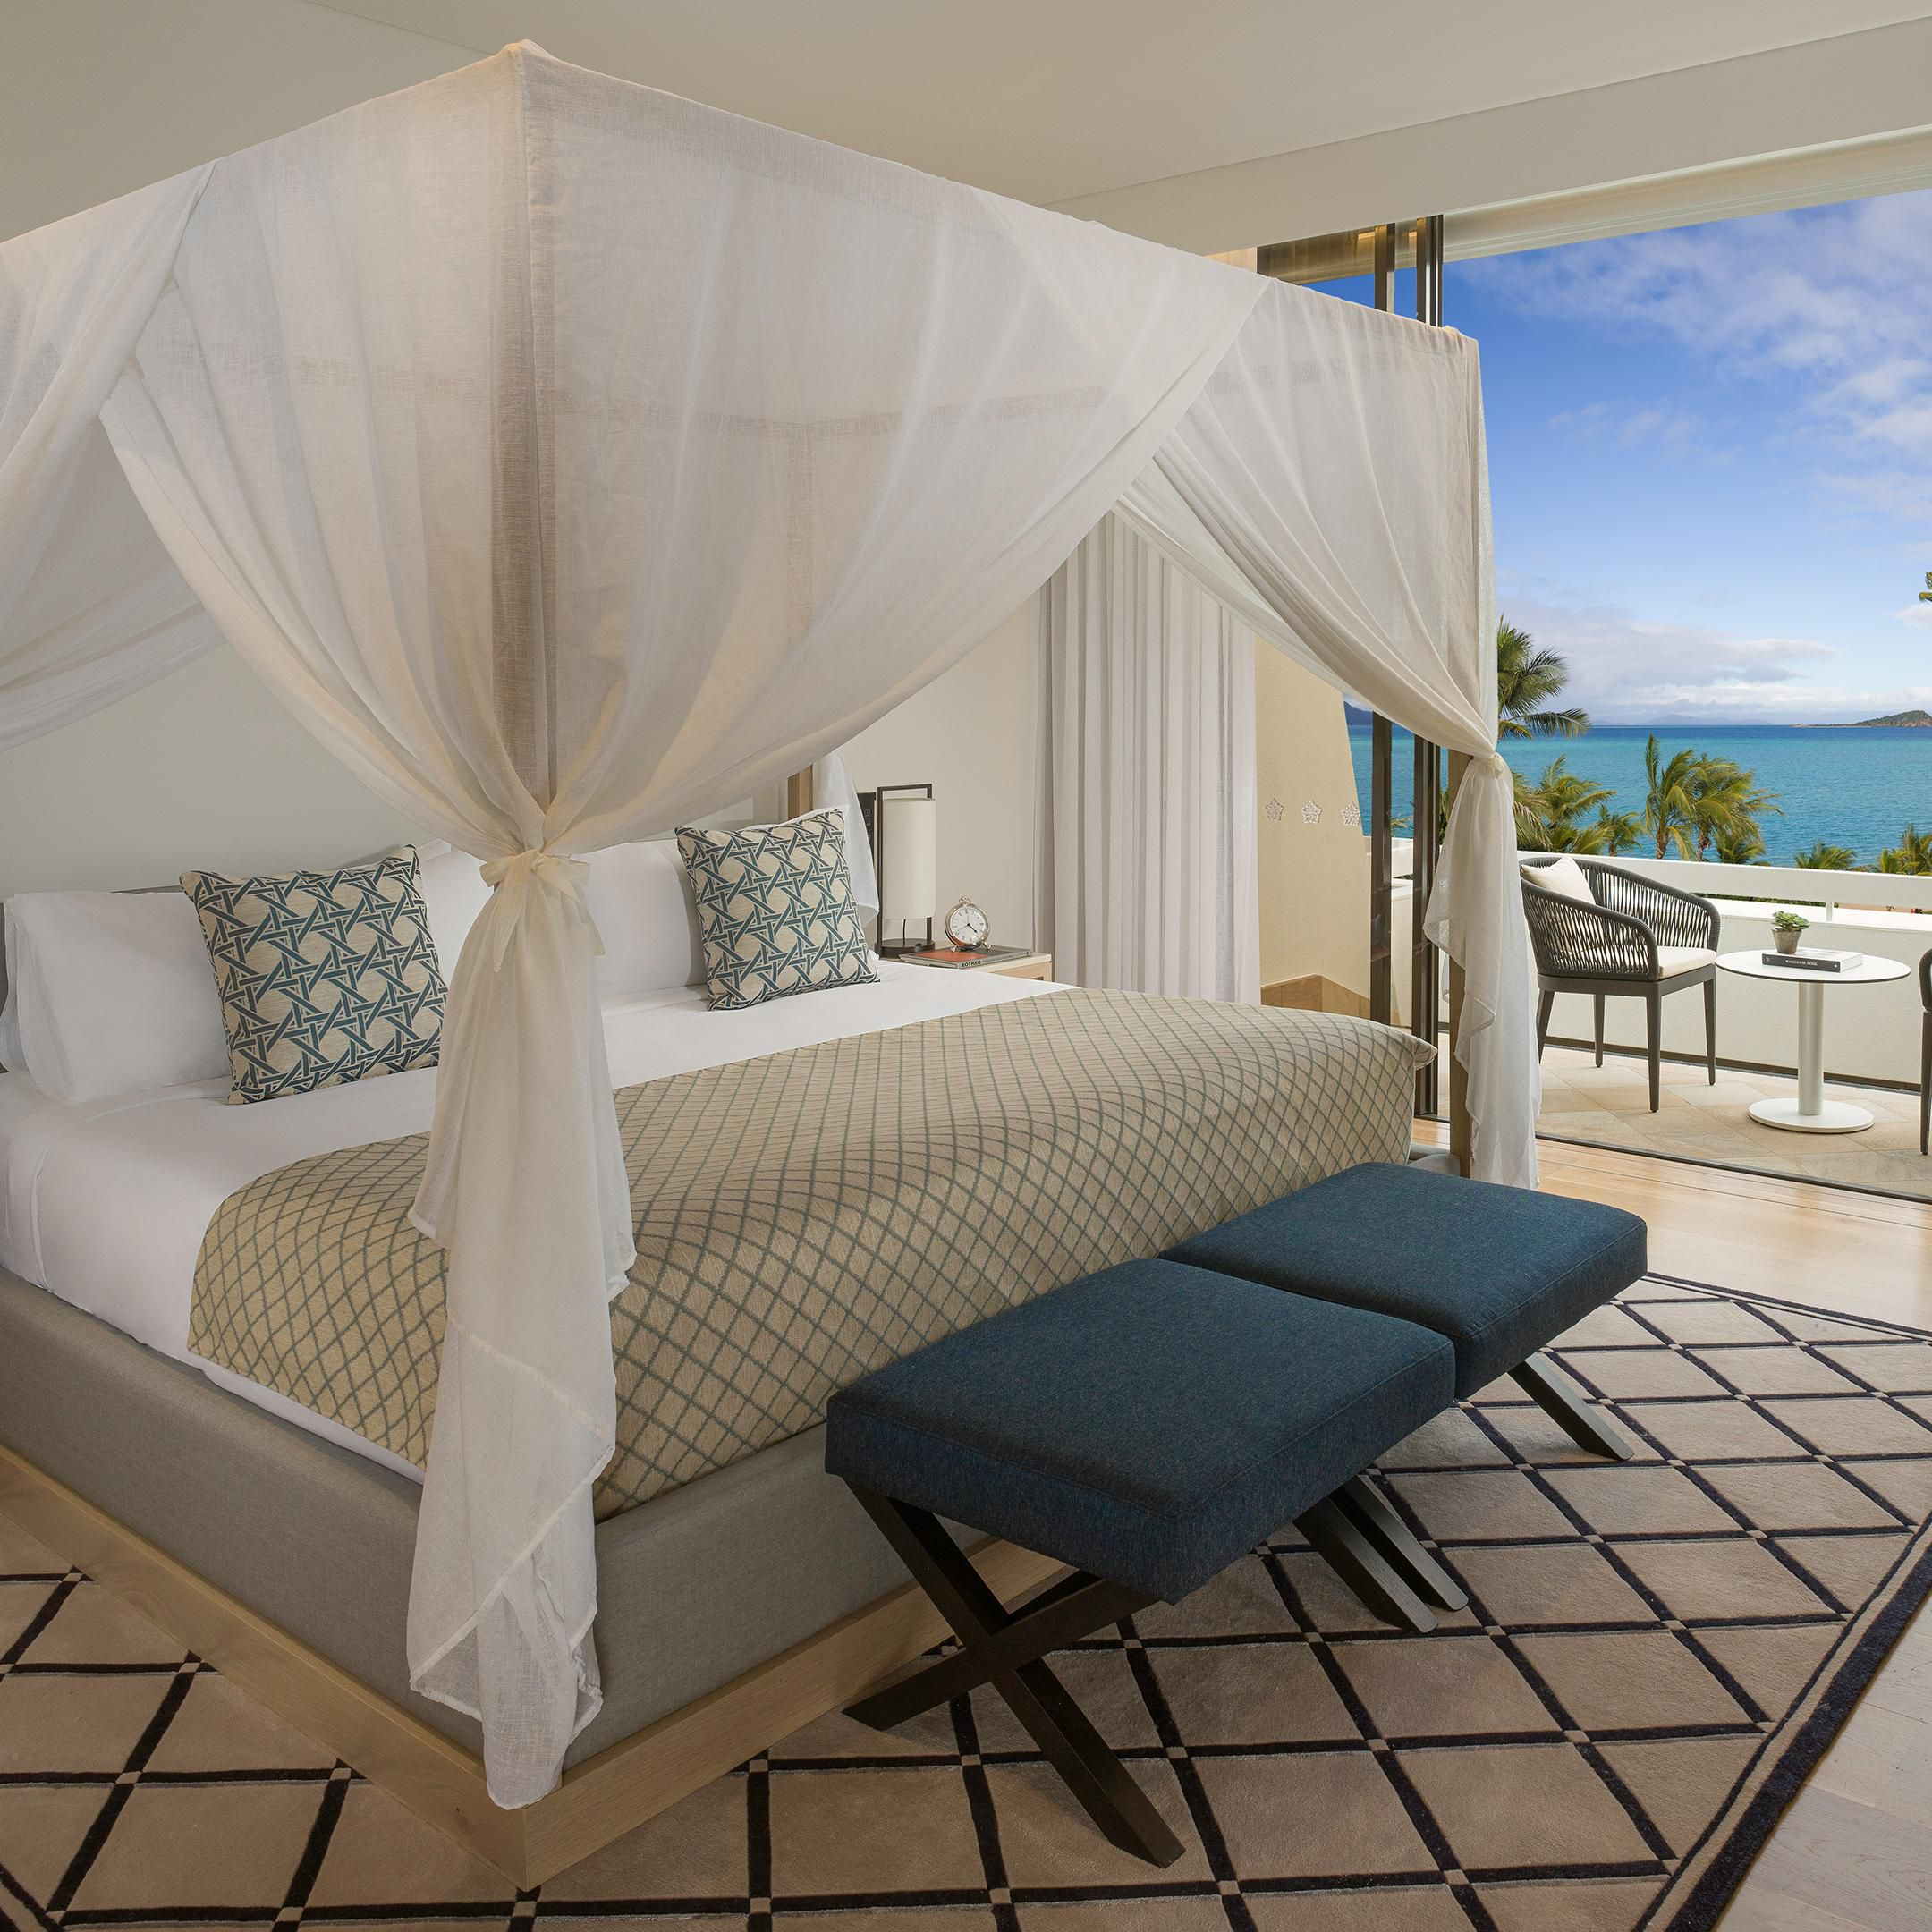 Two bedroom apartment in Hayman Island